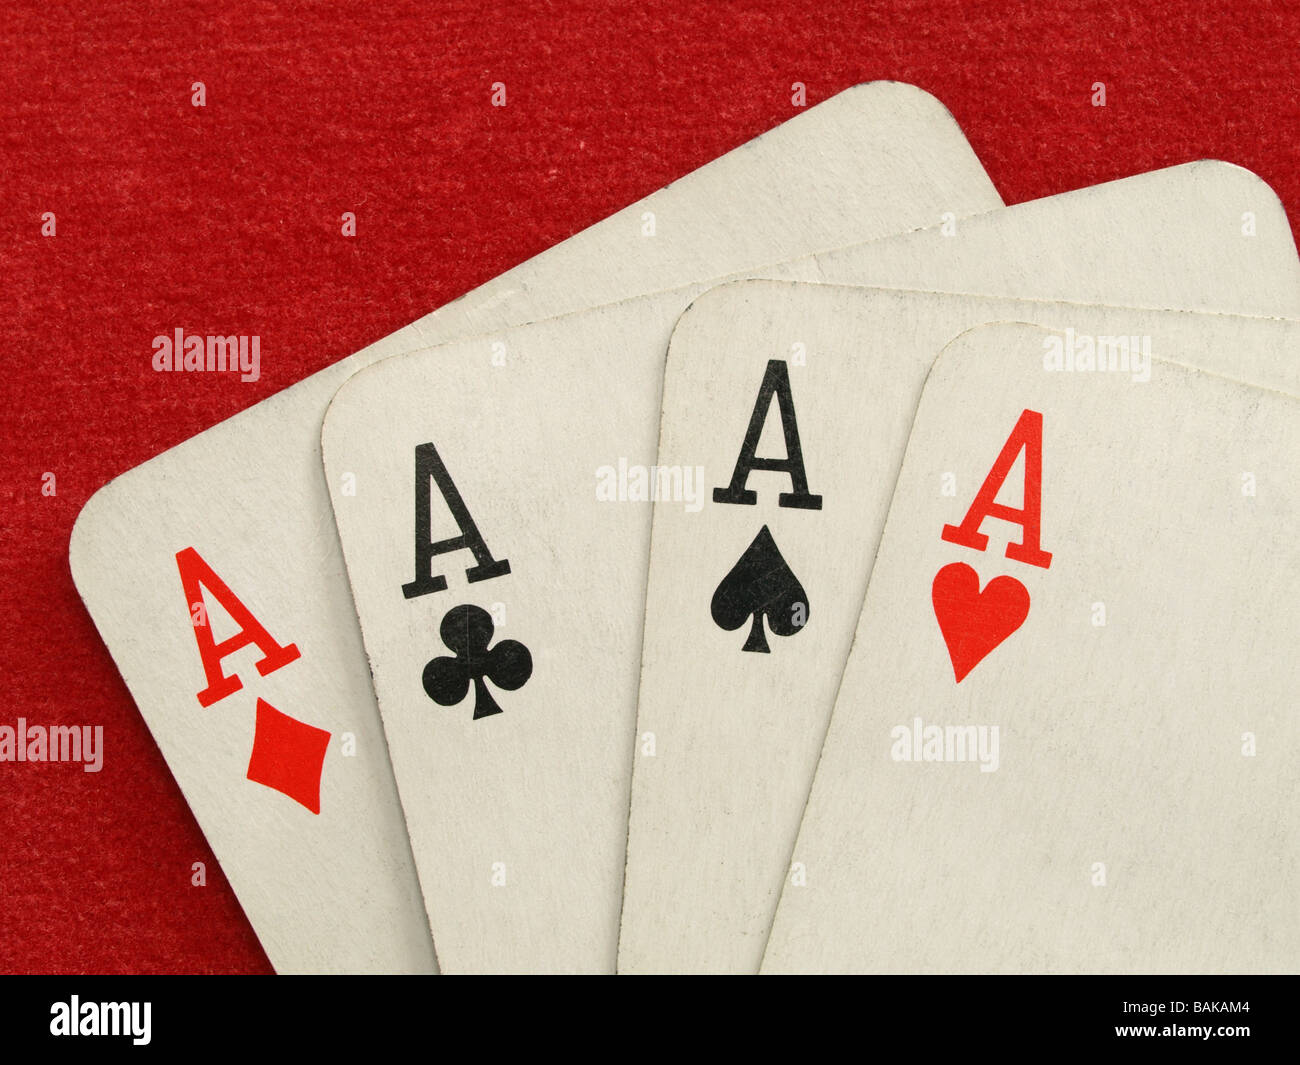 Four Aces Is One Of The Best Card Hands In Stud Or Draw Poker Stock